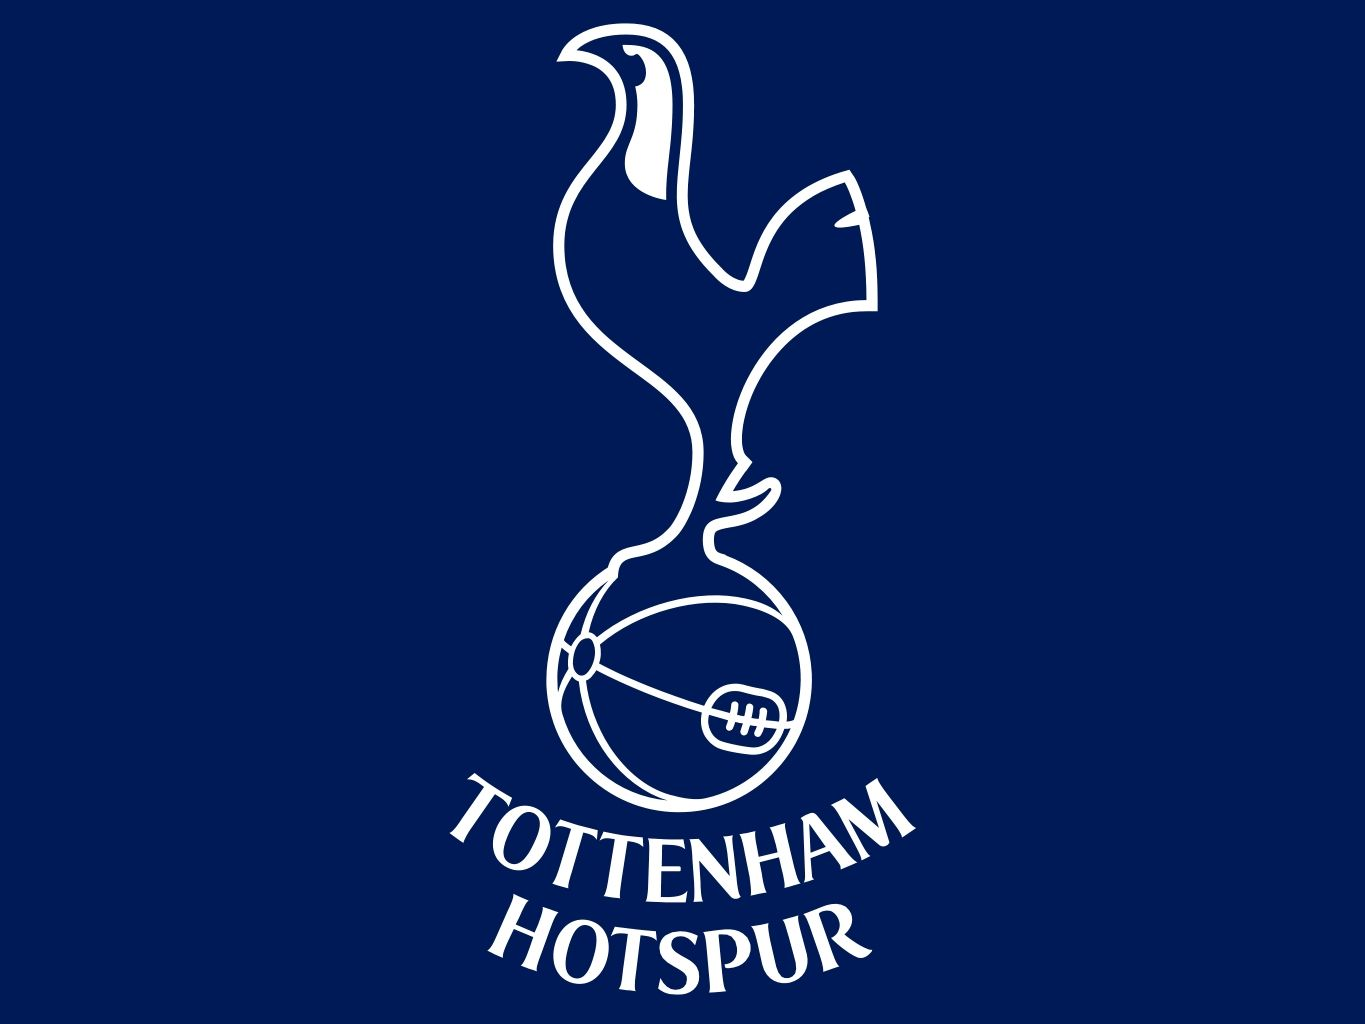 Tottenham Fc A Club Striving To Be The Best To The Lane And Back